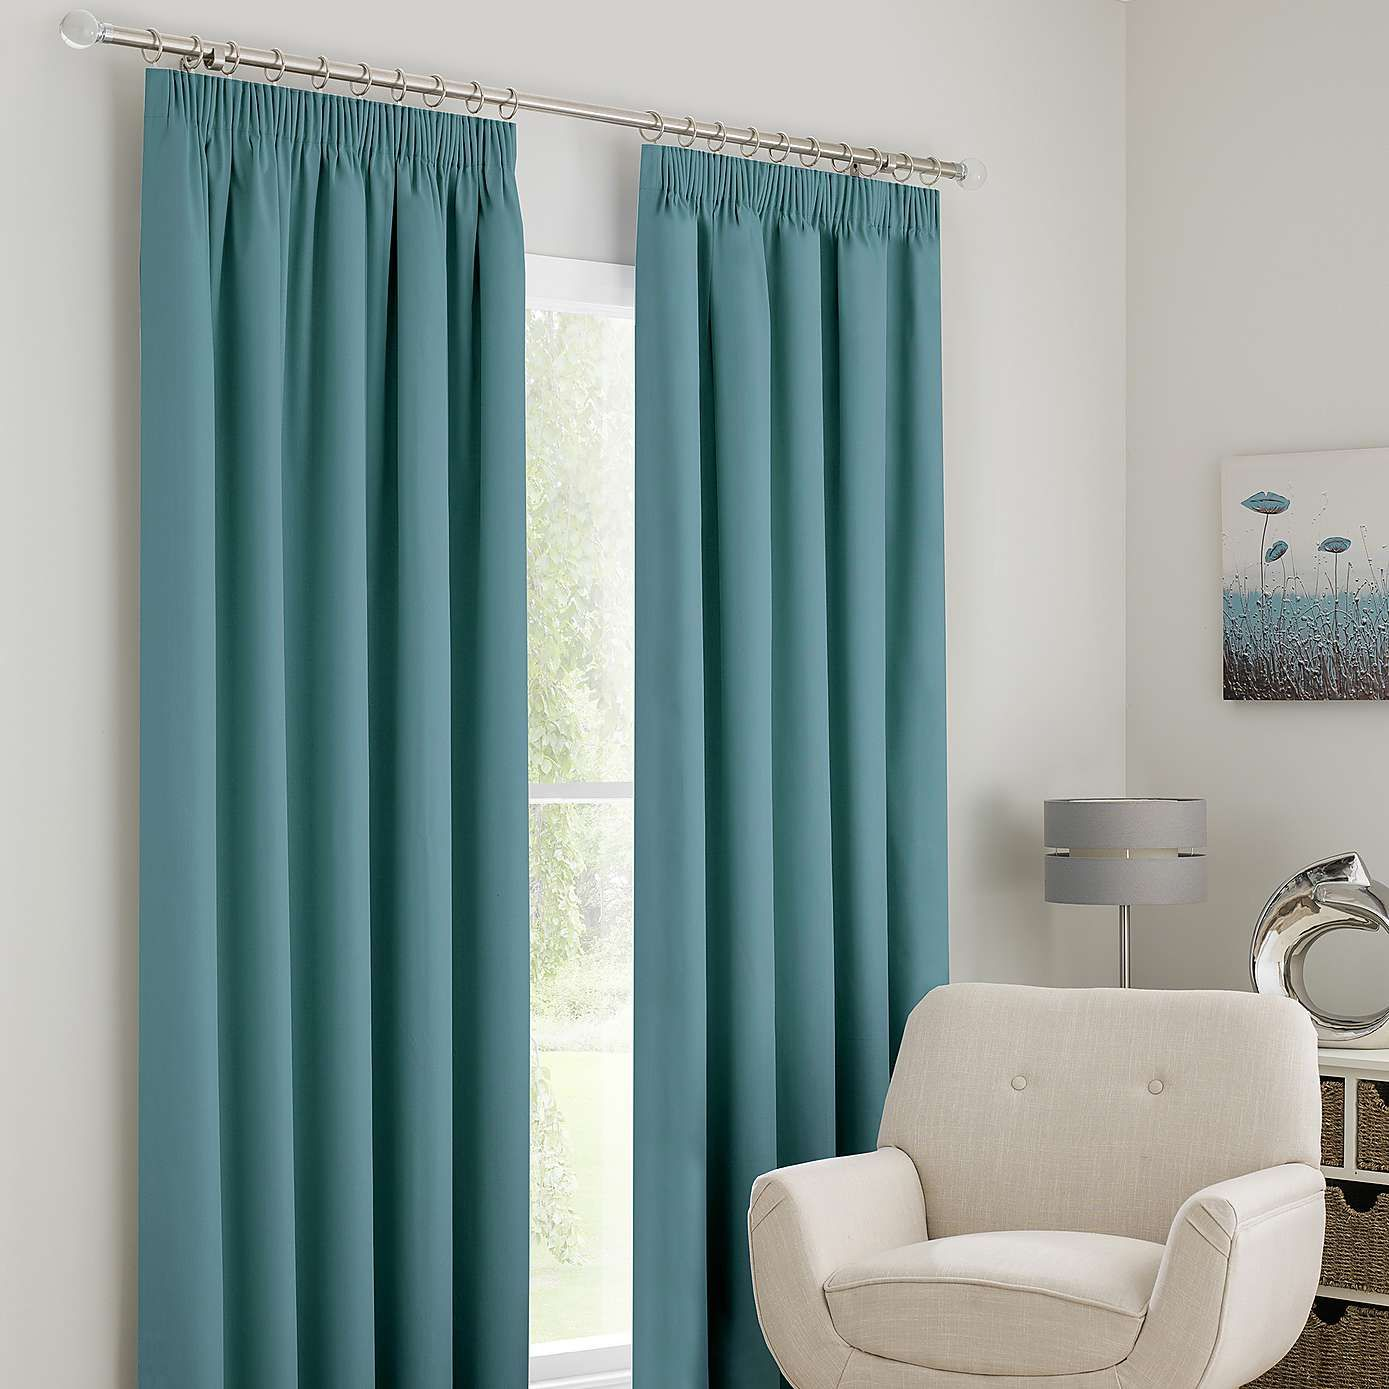 Dunelm Teal Solar Blackout Pencil Pleat Curtains | Pleated curtains ...